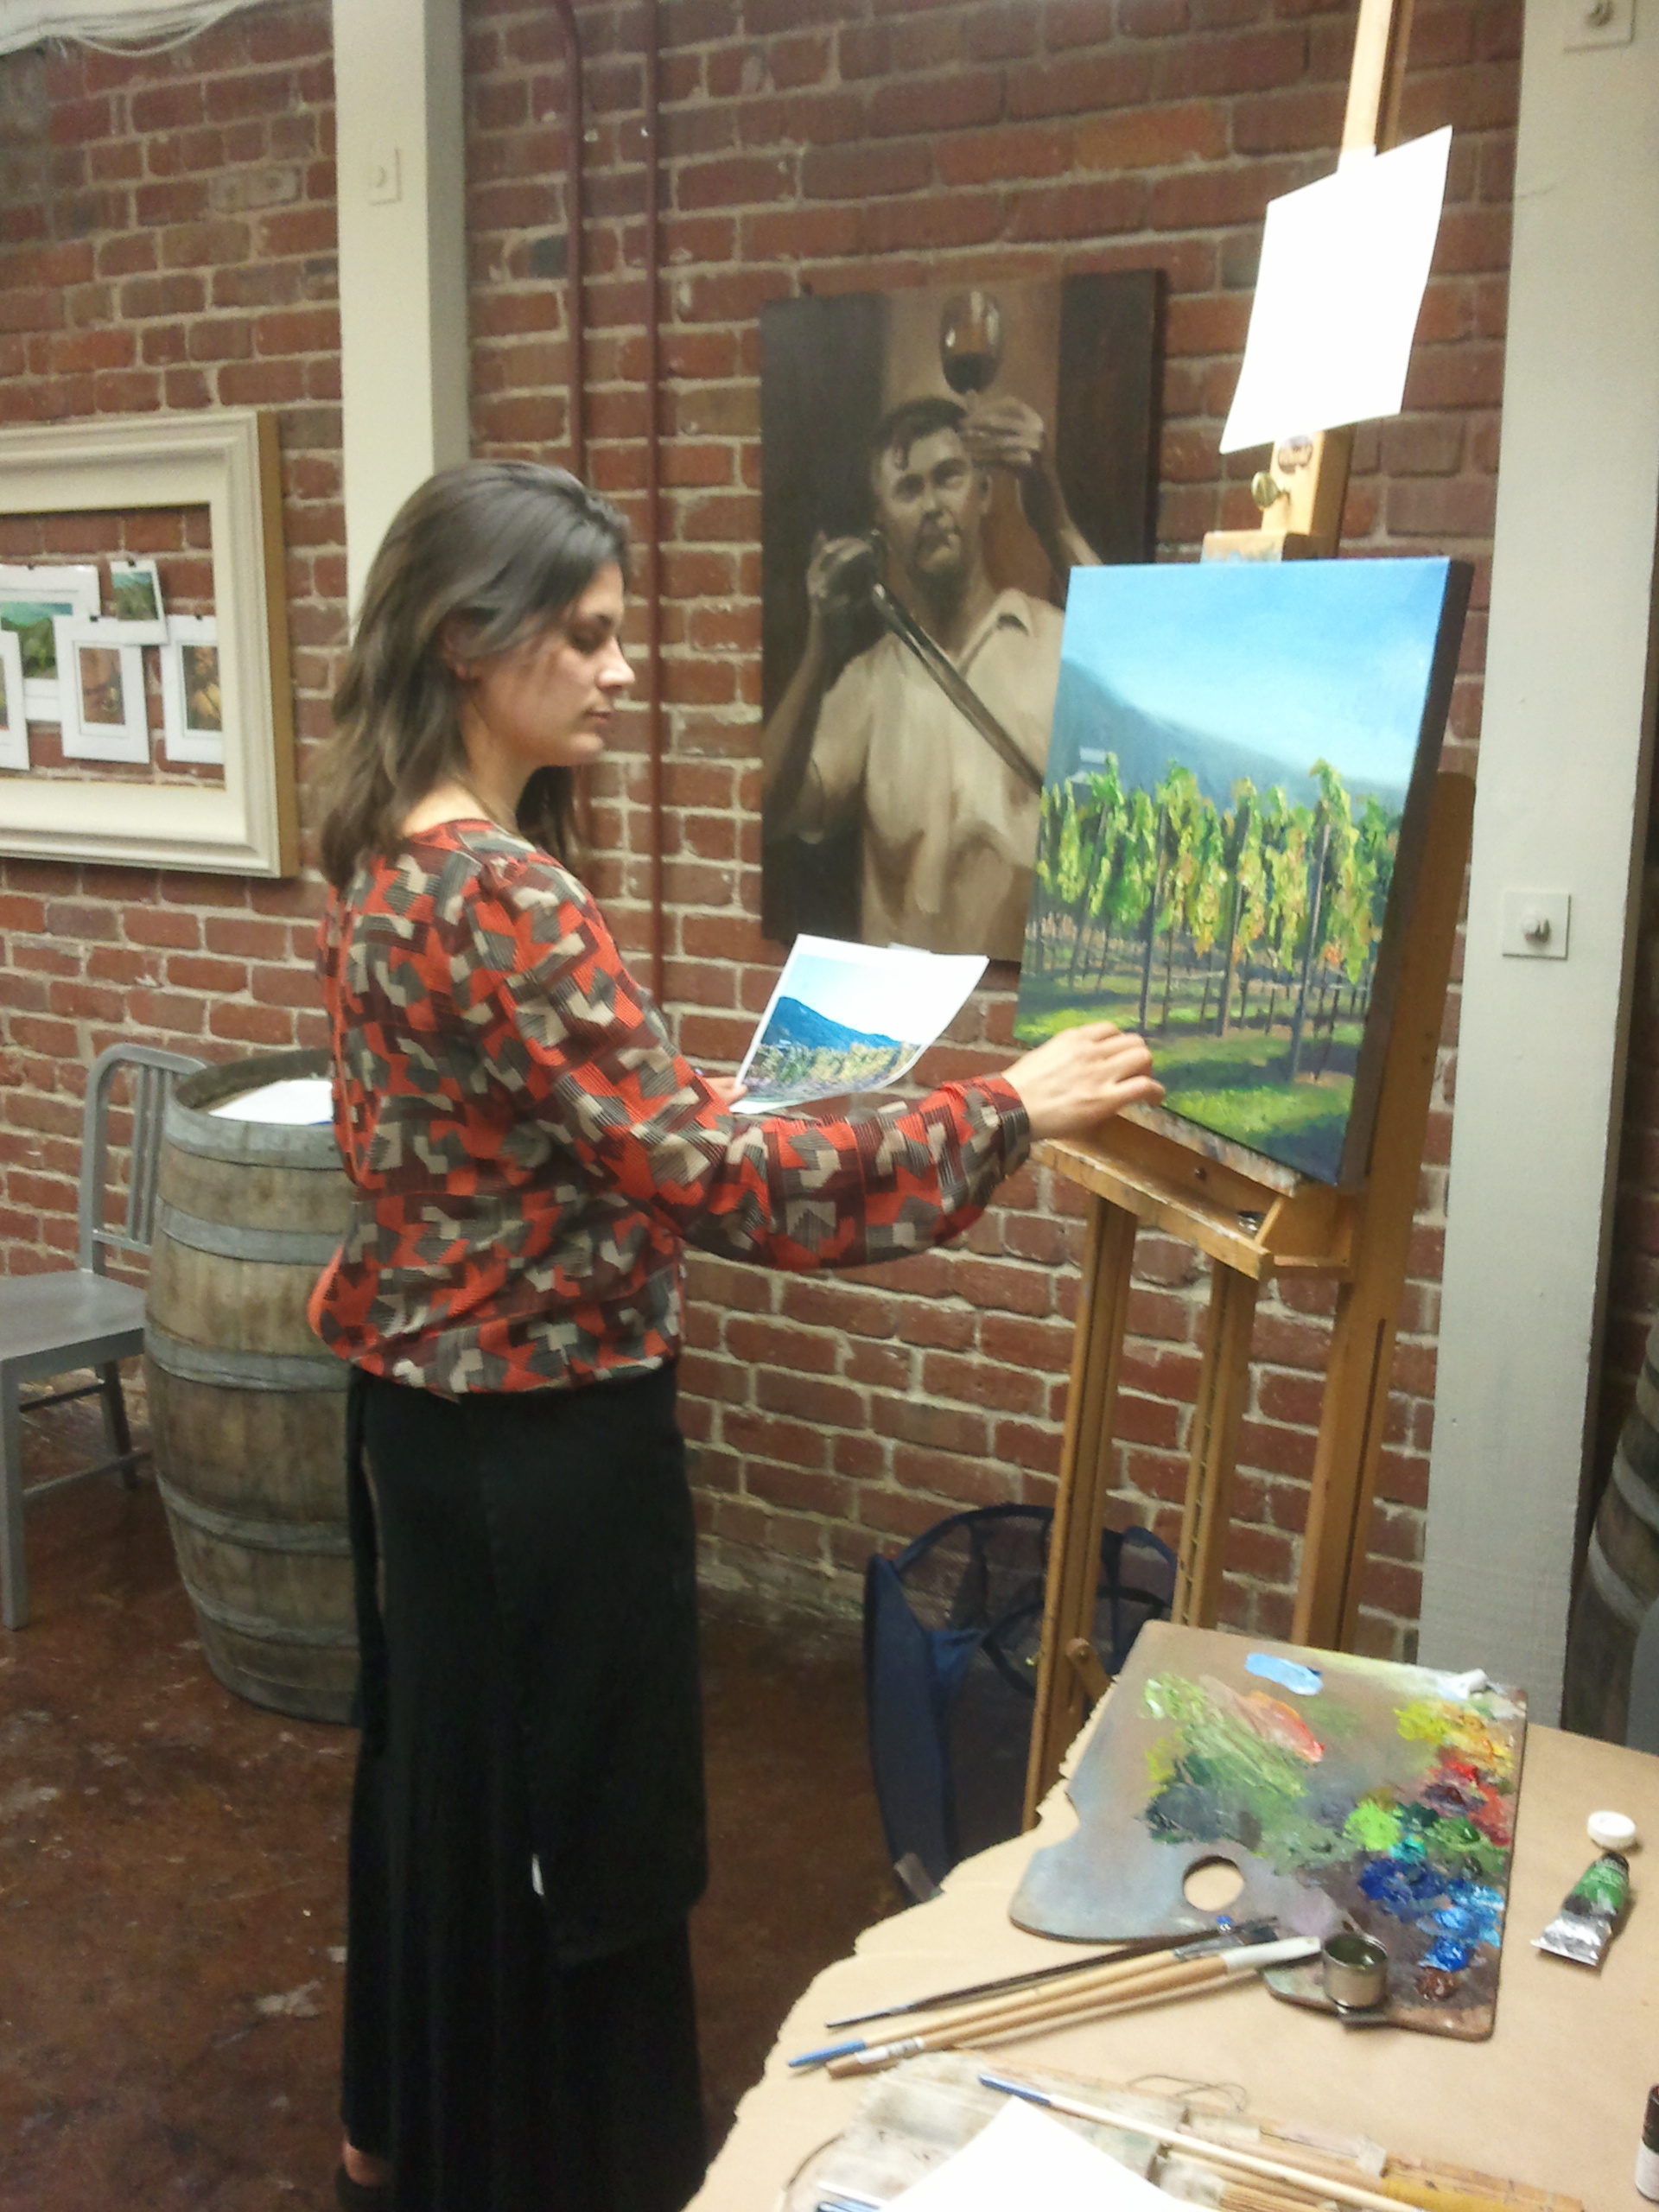 I was adding some finishing strokes to the raffle piece Sat. Night. Valued at $1500.00, folks could purchase tickets for $10.00 and by the end of the reception Sat. Night, someone would be getting their own Napa inspired vineyard painting.